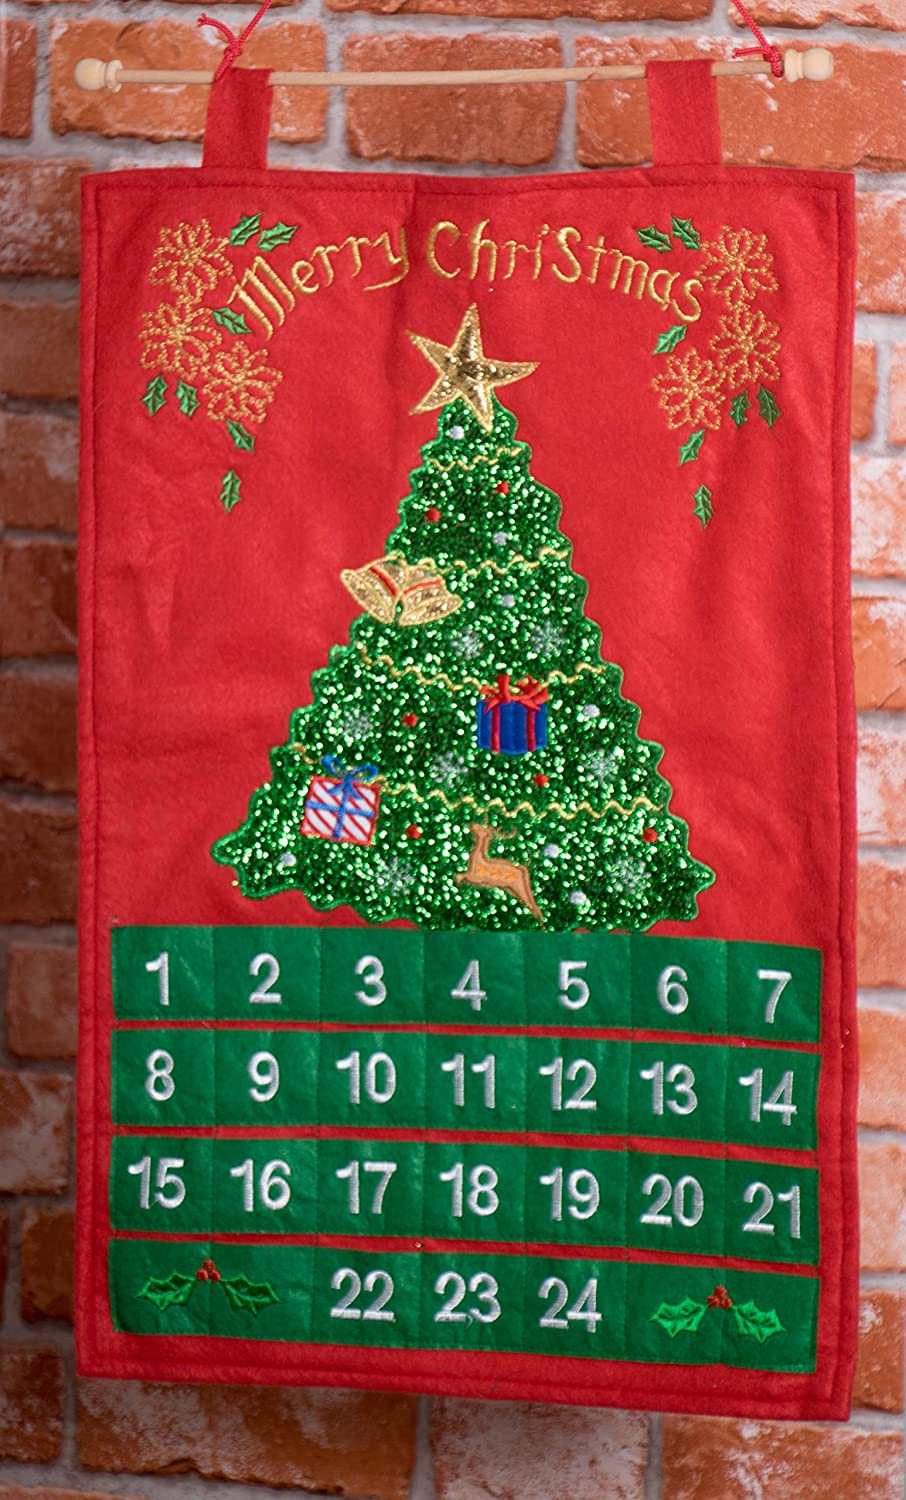 Christmas 24 Day Hanging Cloth Advent Calendar Traditional Holiday Christmas Decor Theme Red and Green Christmas Tree and Ornament Christmas Design Measures 22 Tall Perfect for Home or Office